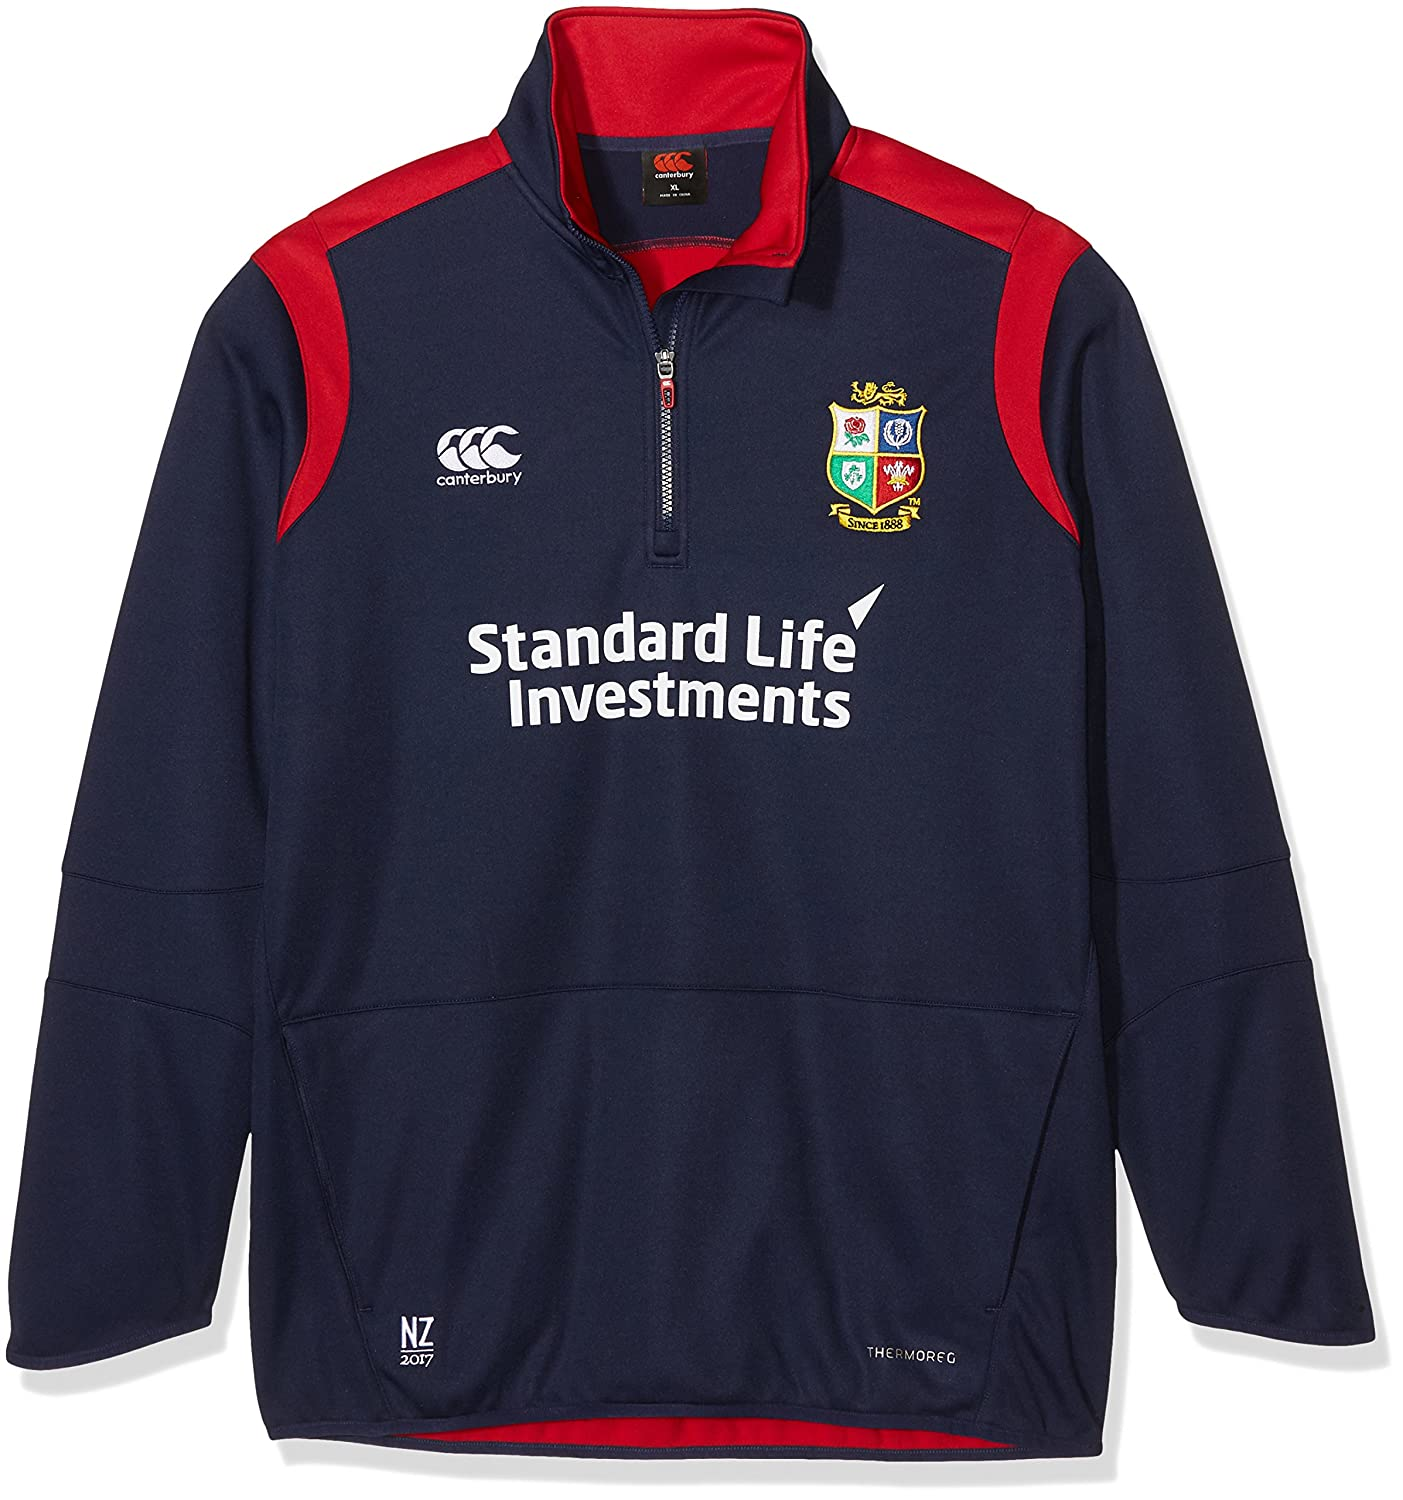 British And Irish Lions Canterburry Herren Thermoreg-Zipper, mit kurzem Reißverschluss, Fleece, Design Canterbury